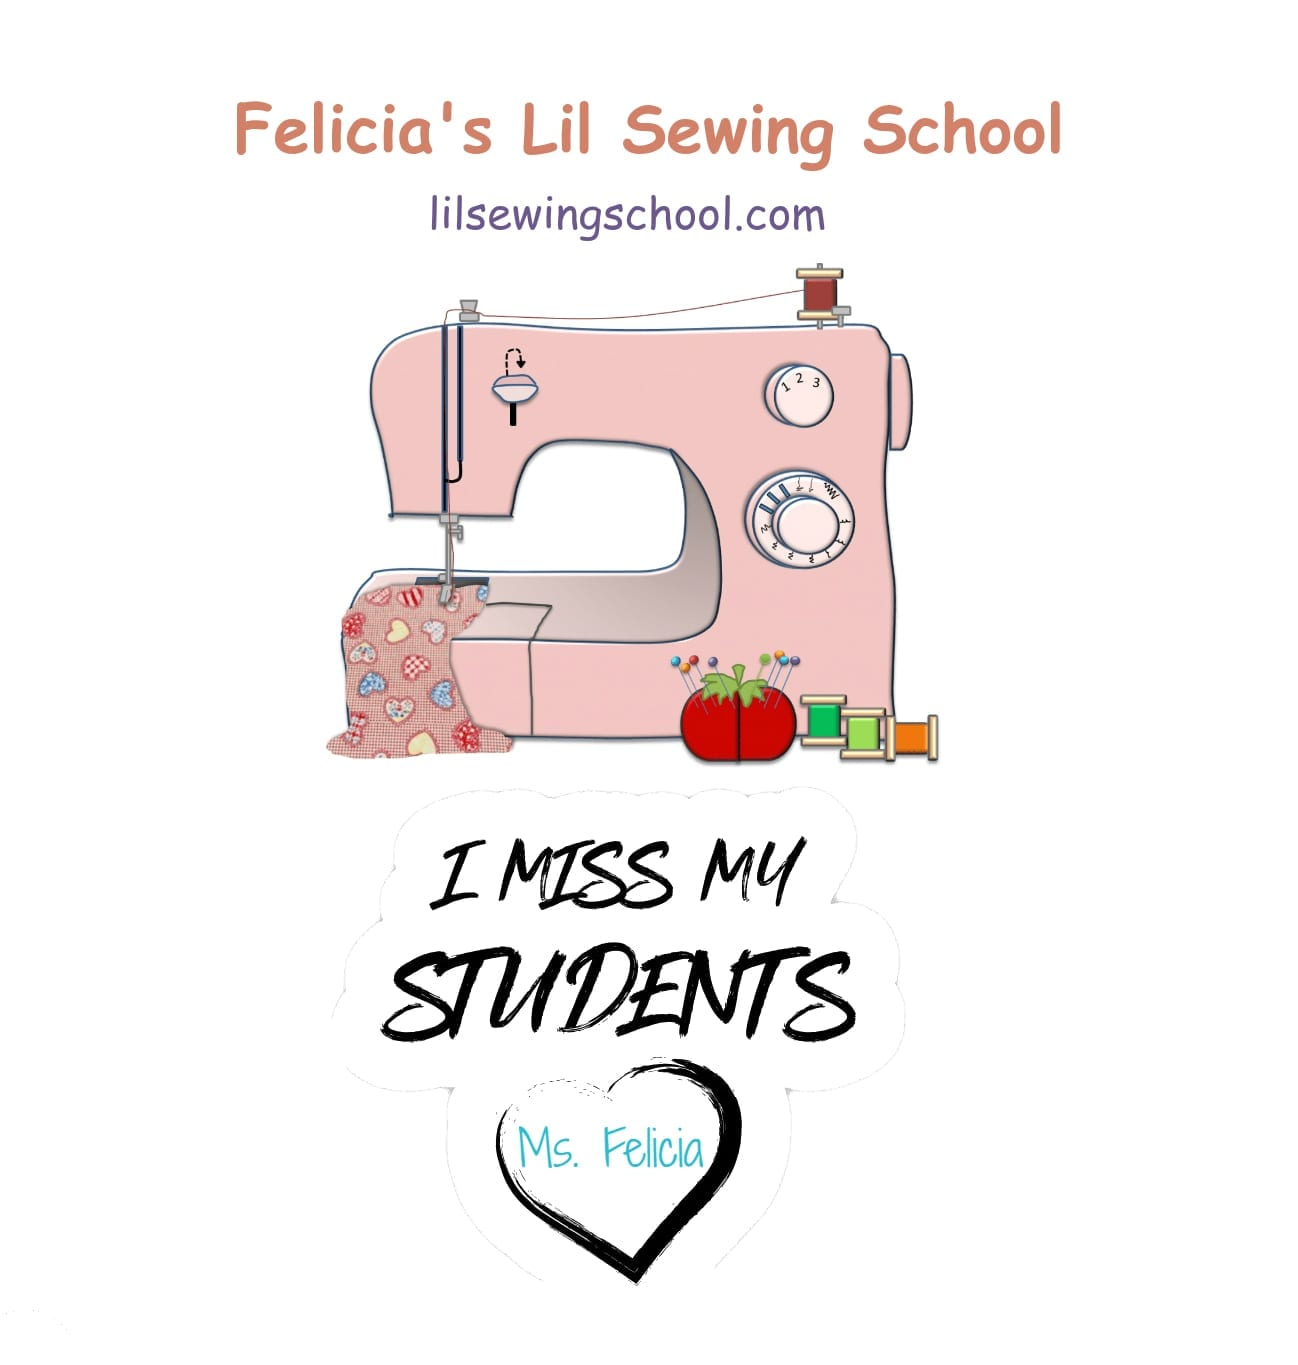 Lil Sewing School – I miss my students